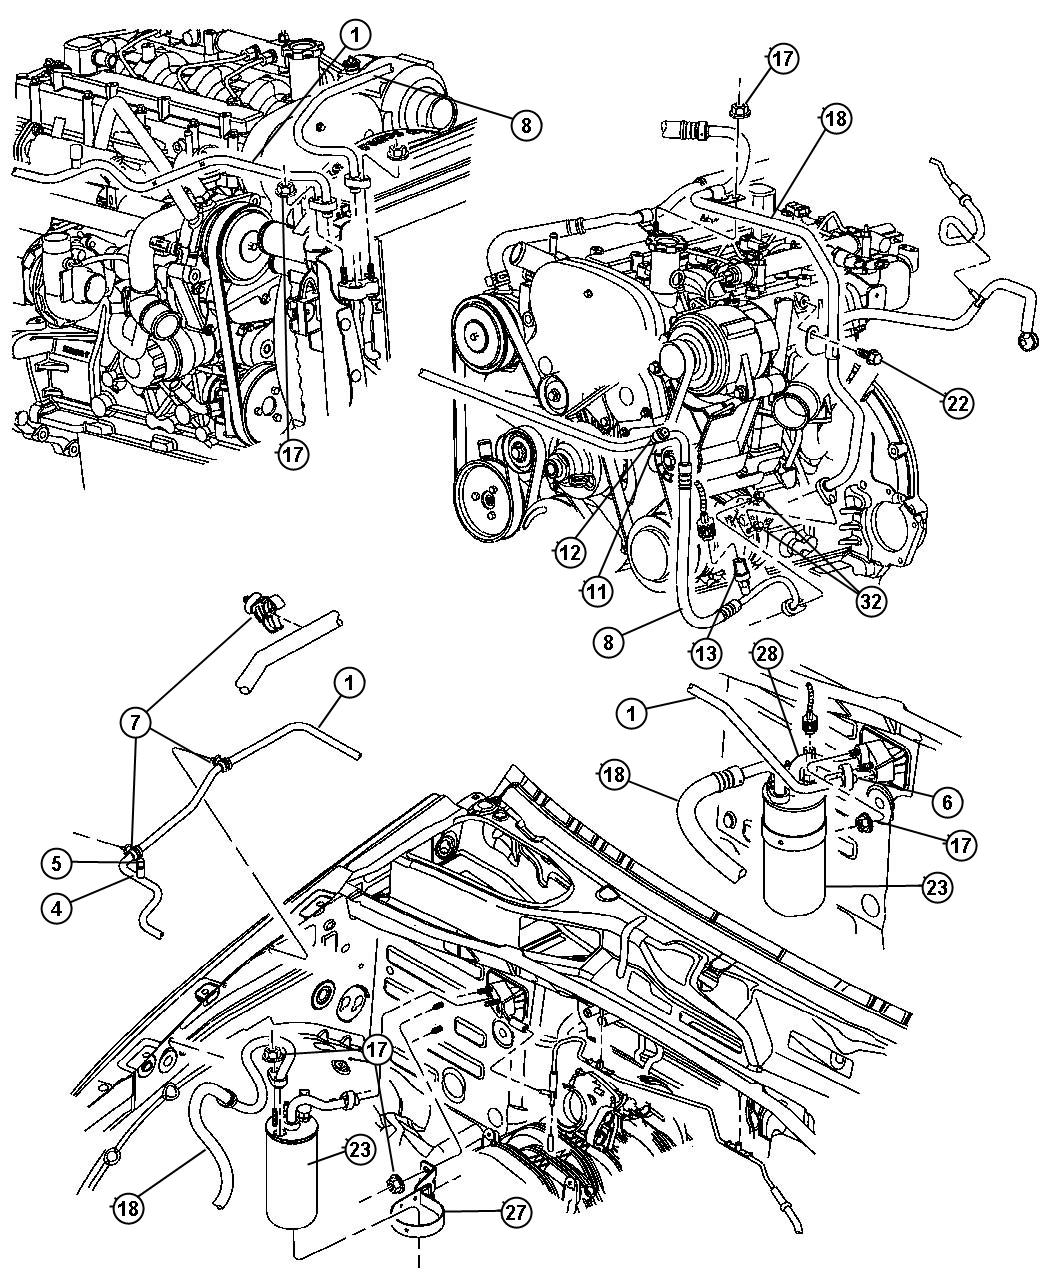 Jeep Liberty Switch A C Cycling Low Pressure Air Conditioning Plumbing